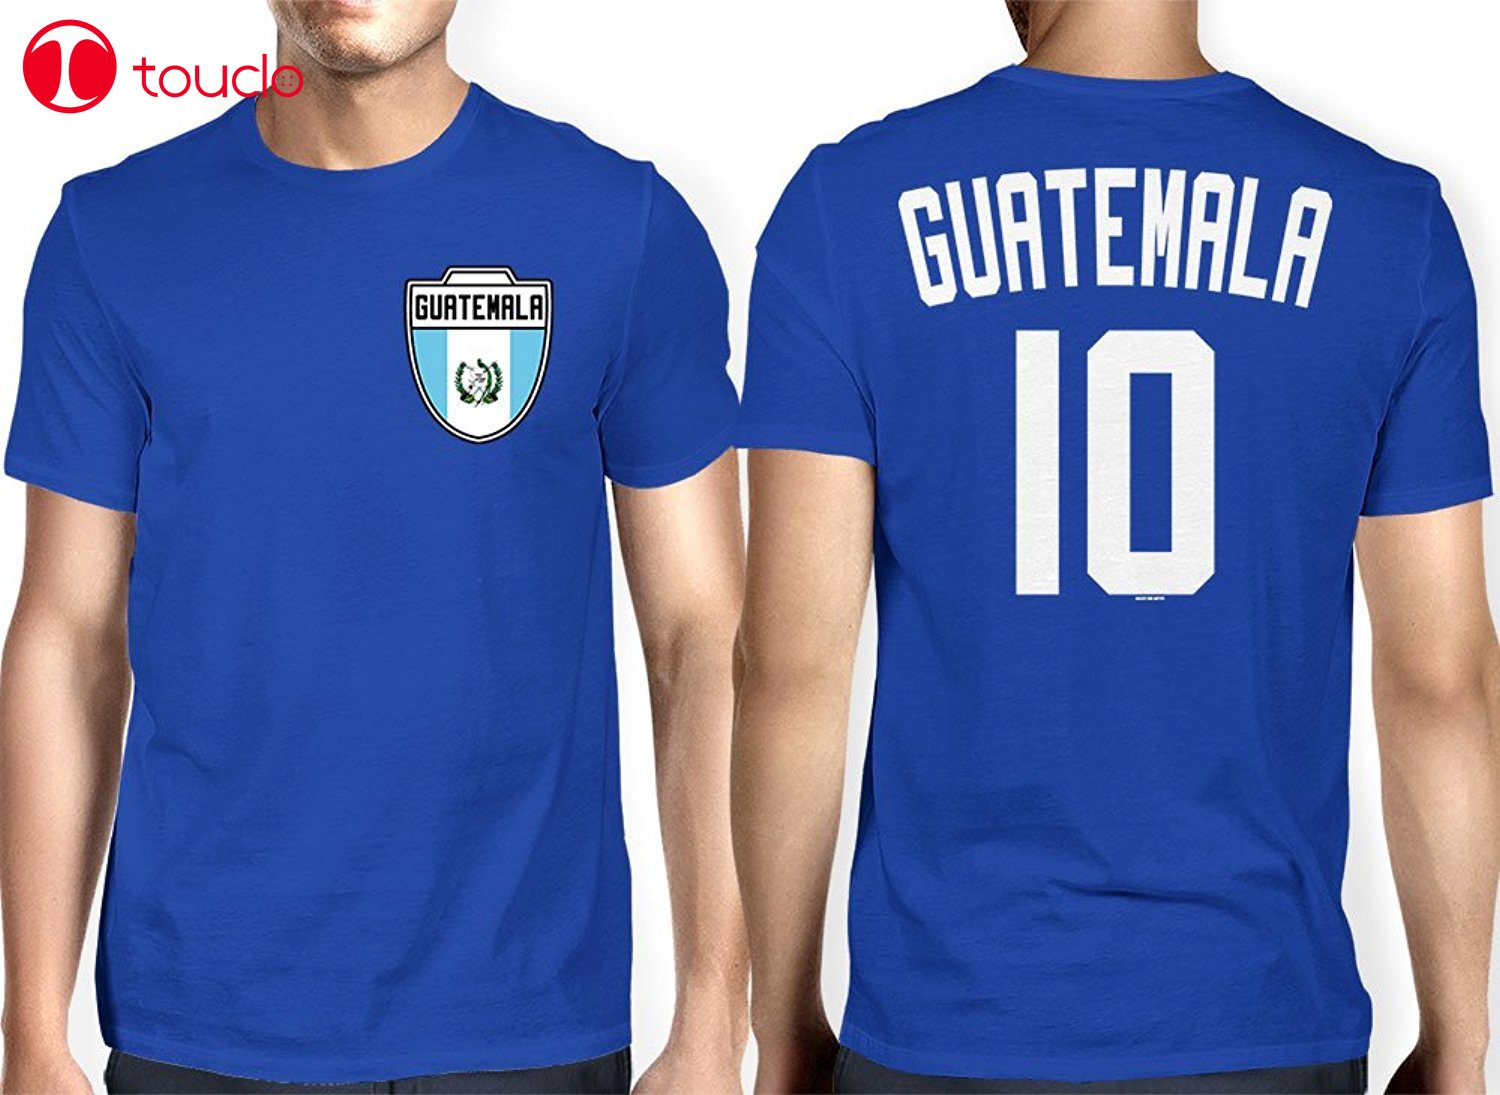 Double Side T-Shirt 100% Cotton Fashion Men's Guatemala Guatemalan Soccers Footballer T-Shirt Hoodies